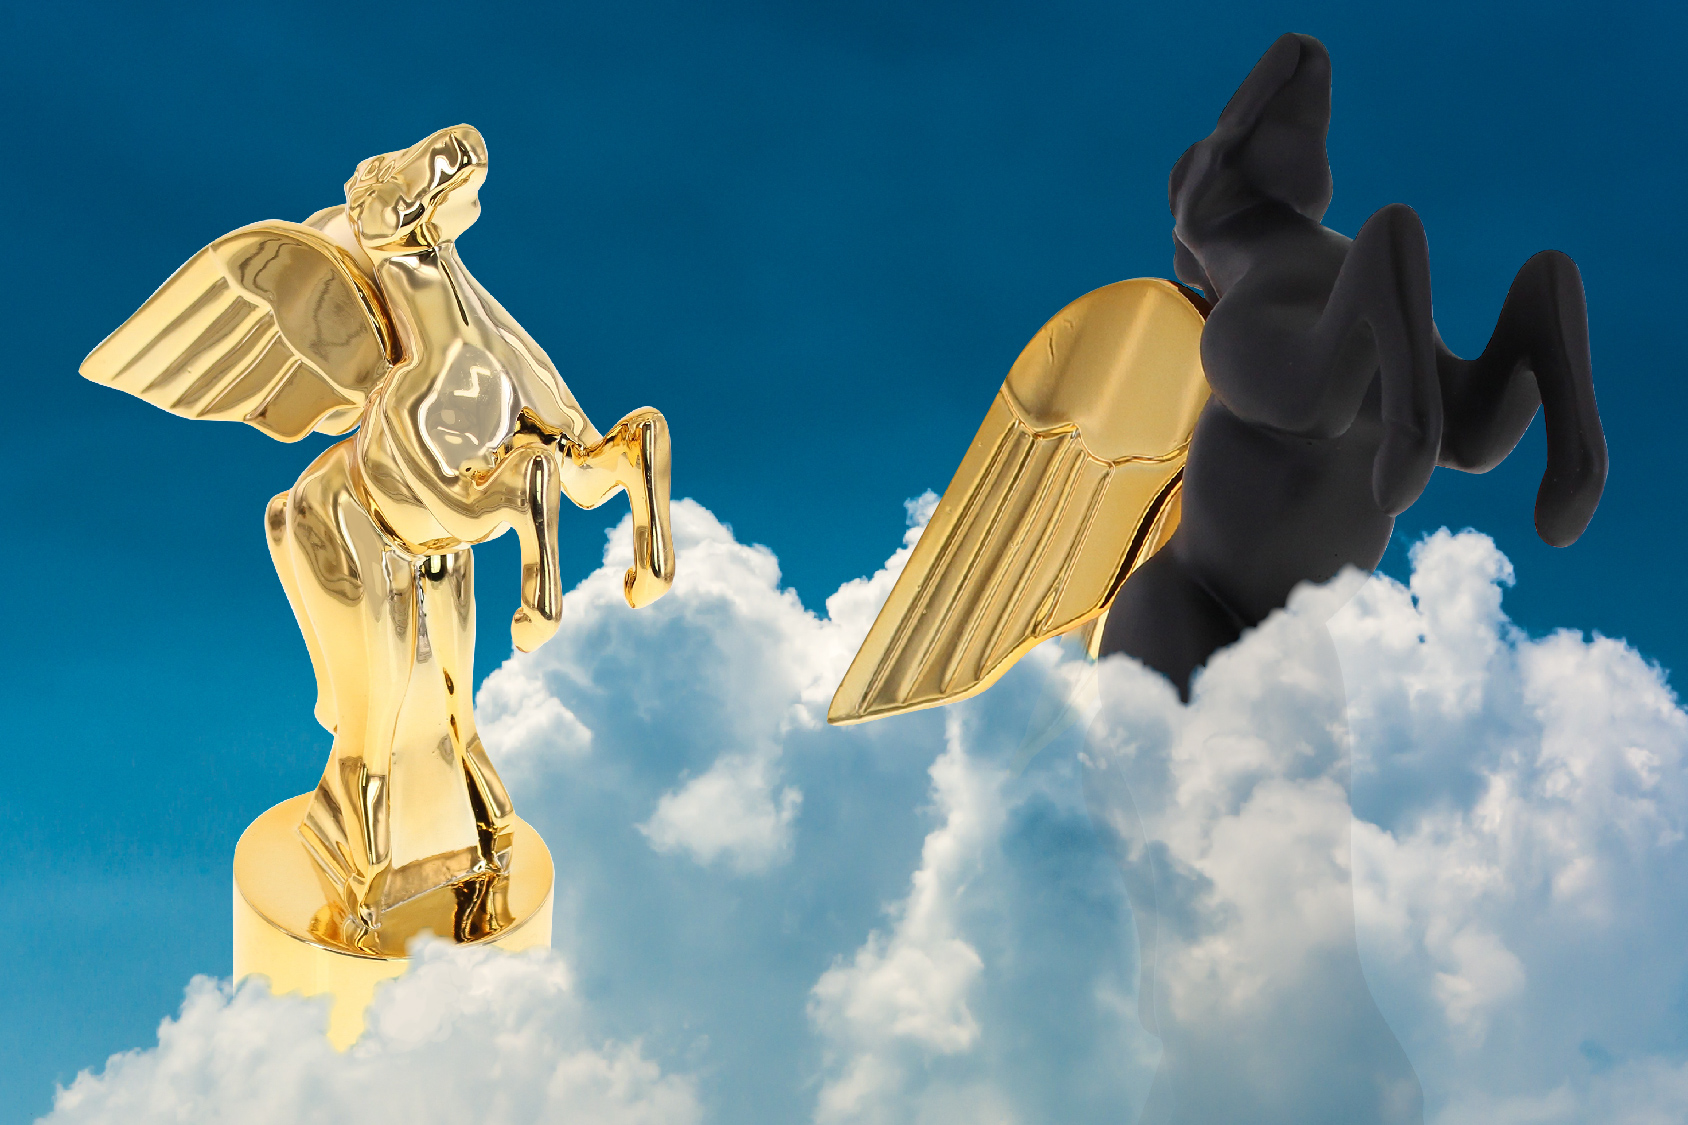 Two pegasus shaped custom awards emerging from clouds